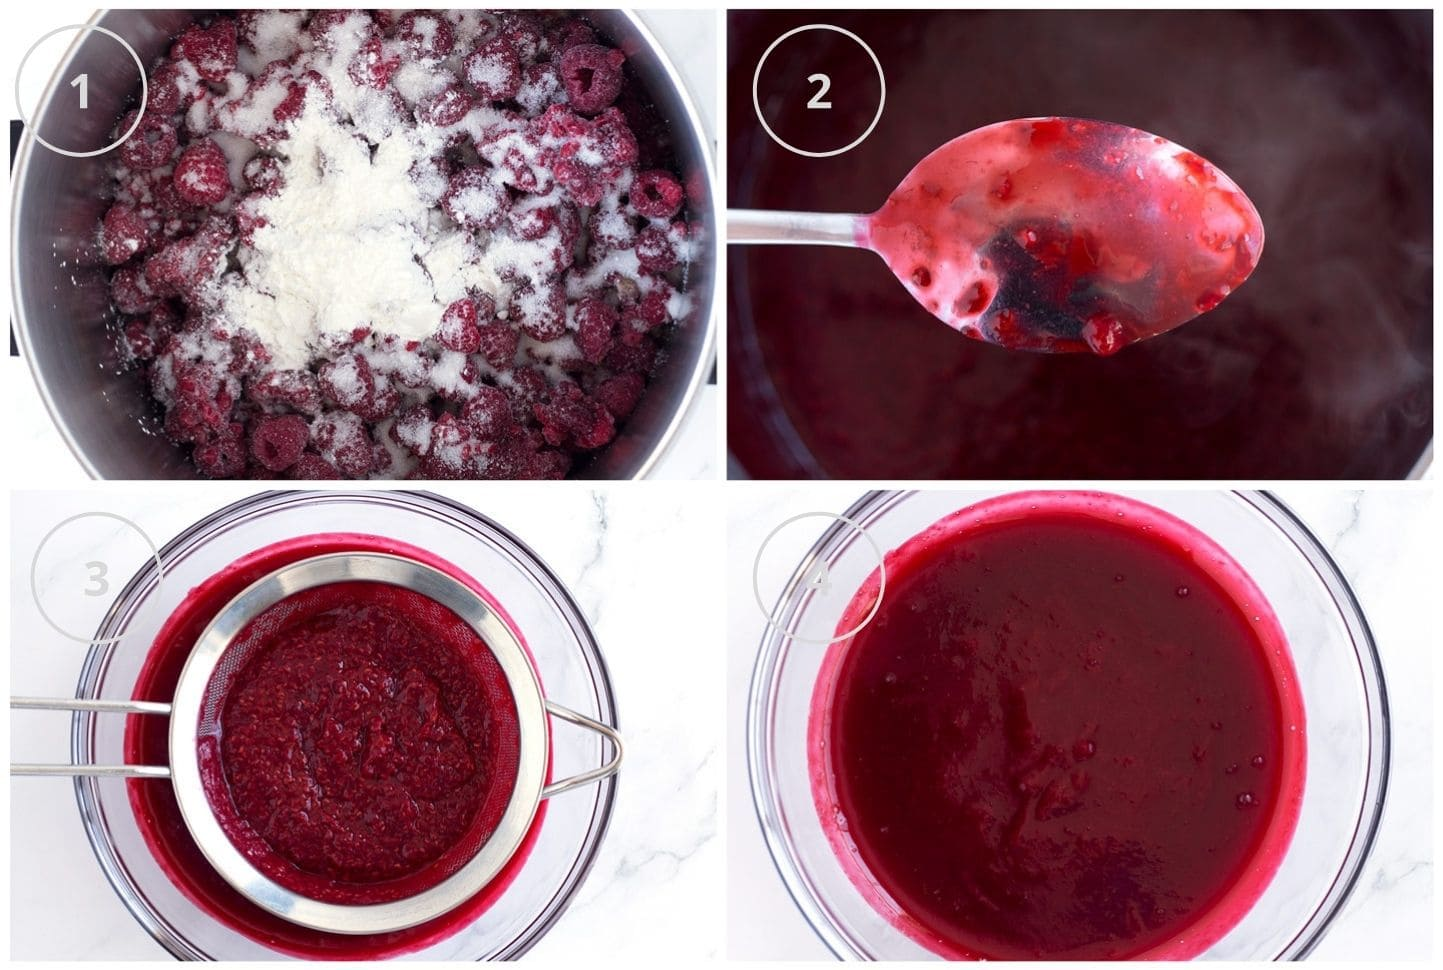 Step-by-step photos of raspberry filling for bundt cake.